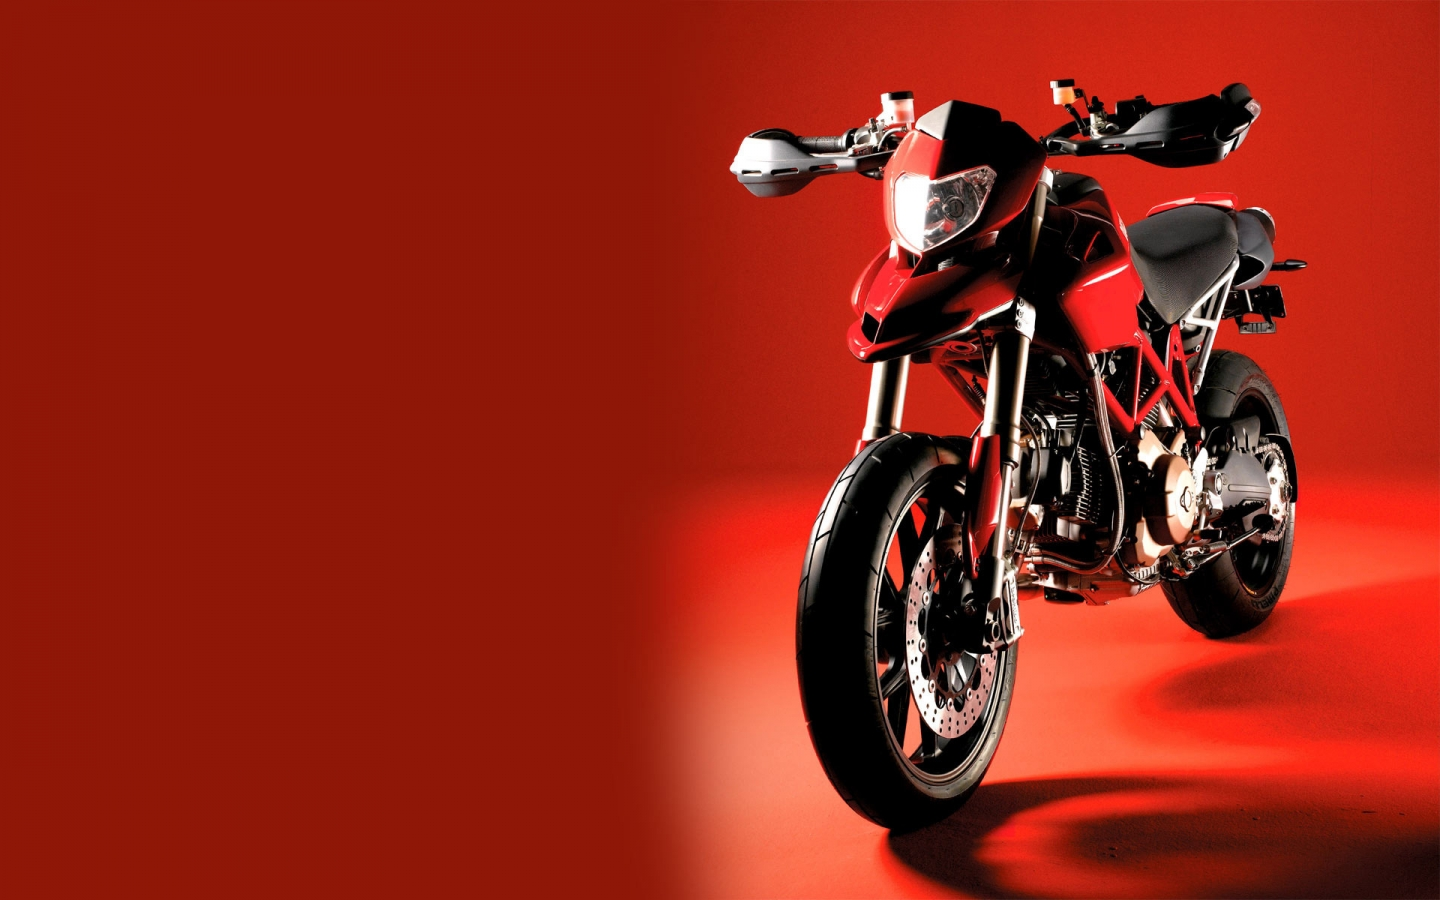 Ducati Hypermotard Red for 1440 x 900 widescreen resolution